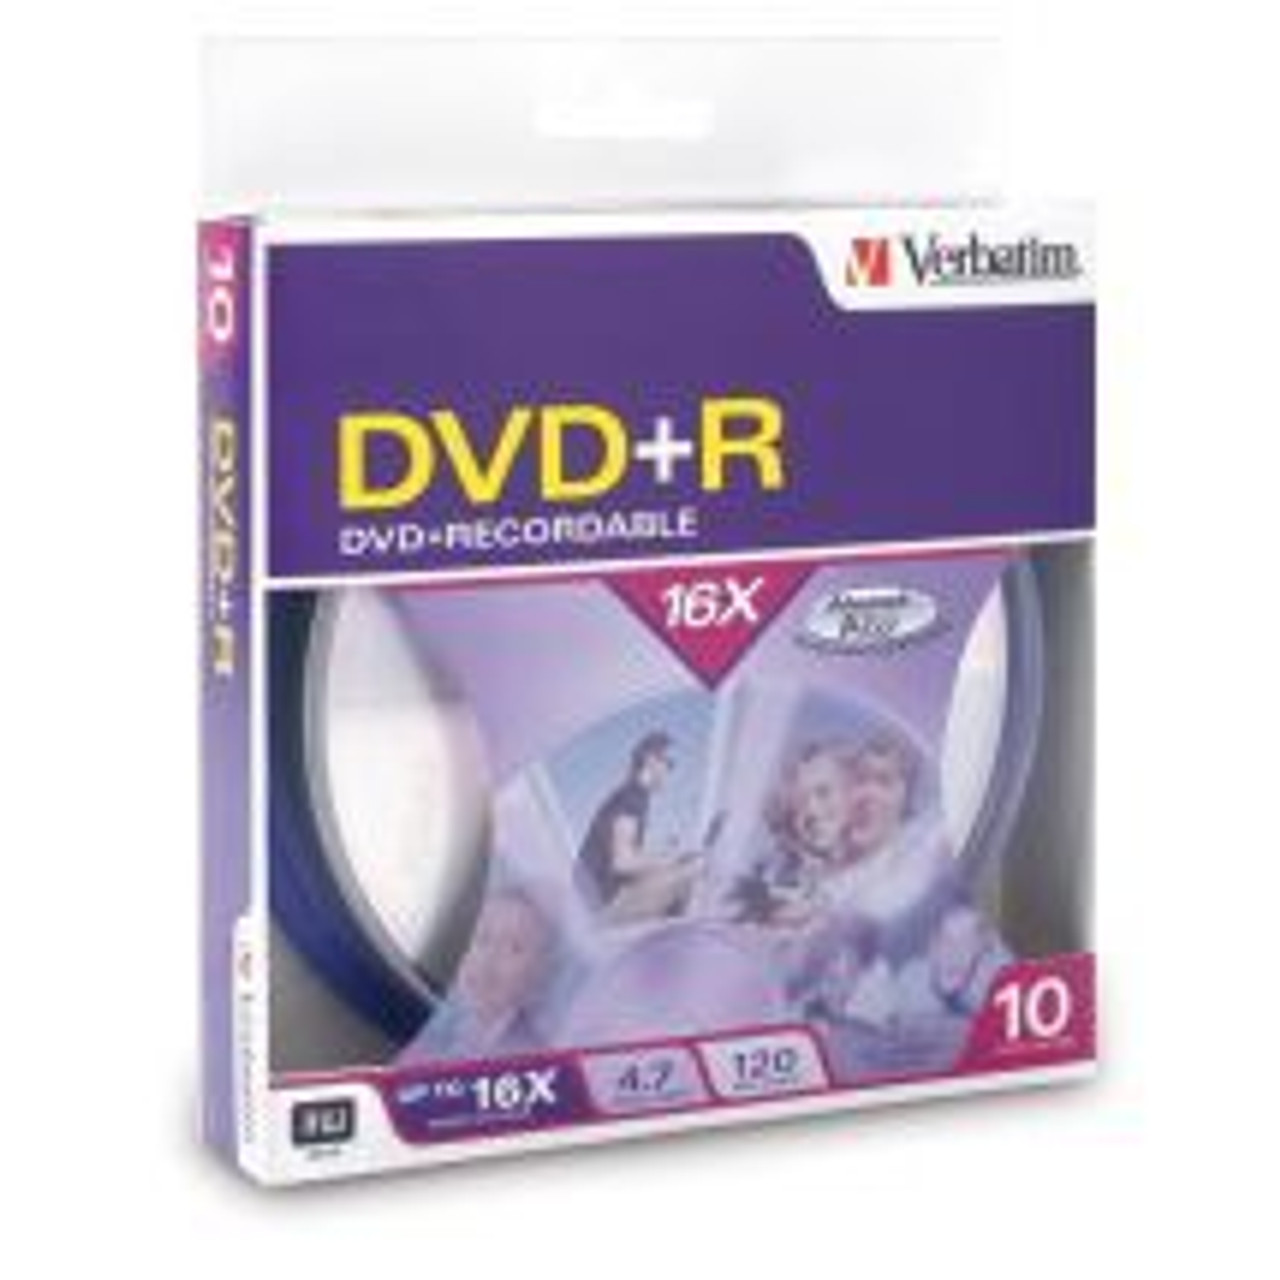 Image for Verbatim DVD+R 4.7GB Spindle 10 Pack 16x (95032) CX Computer Superstore